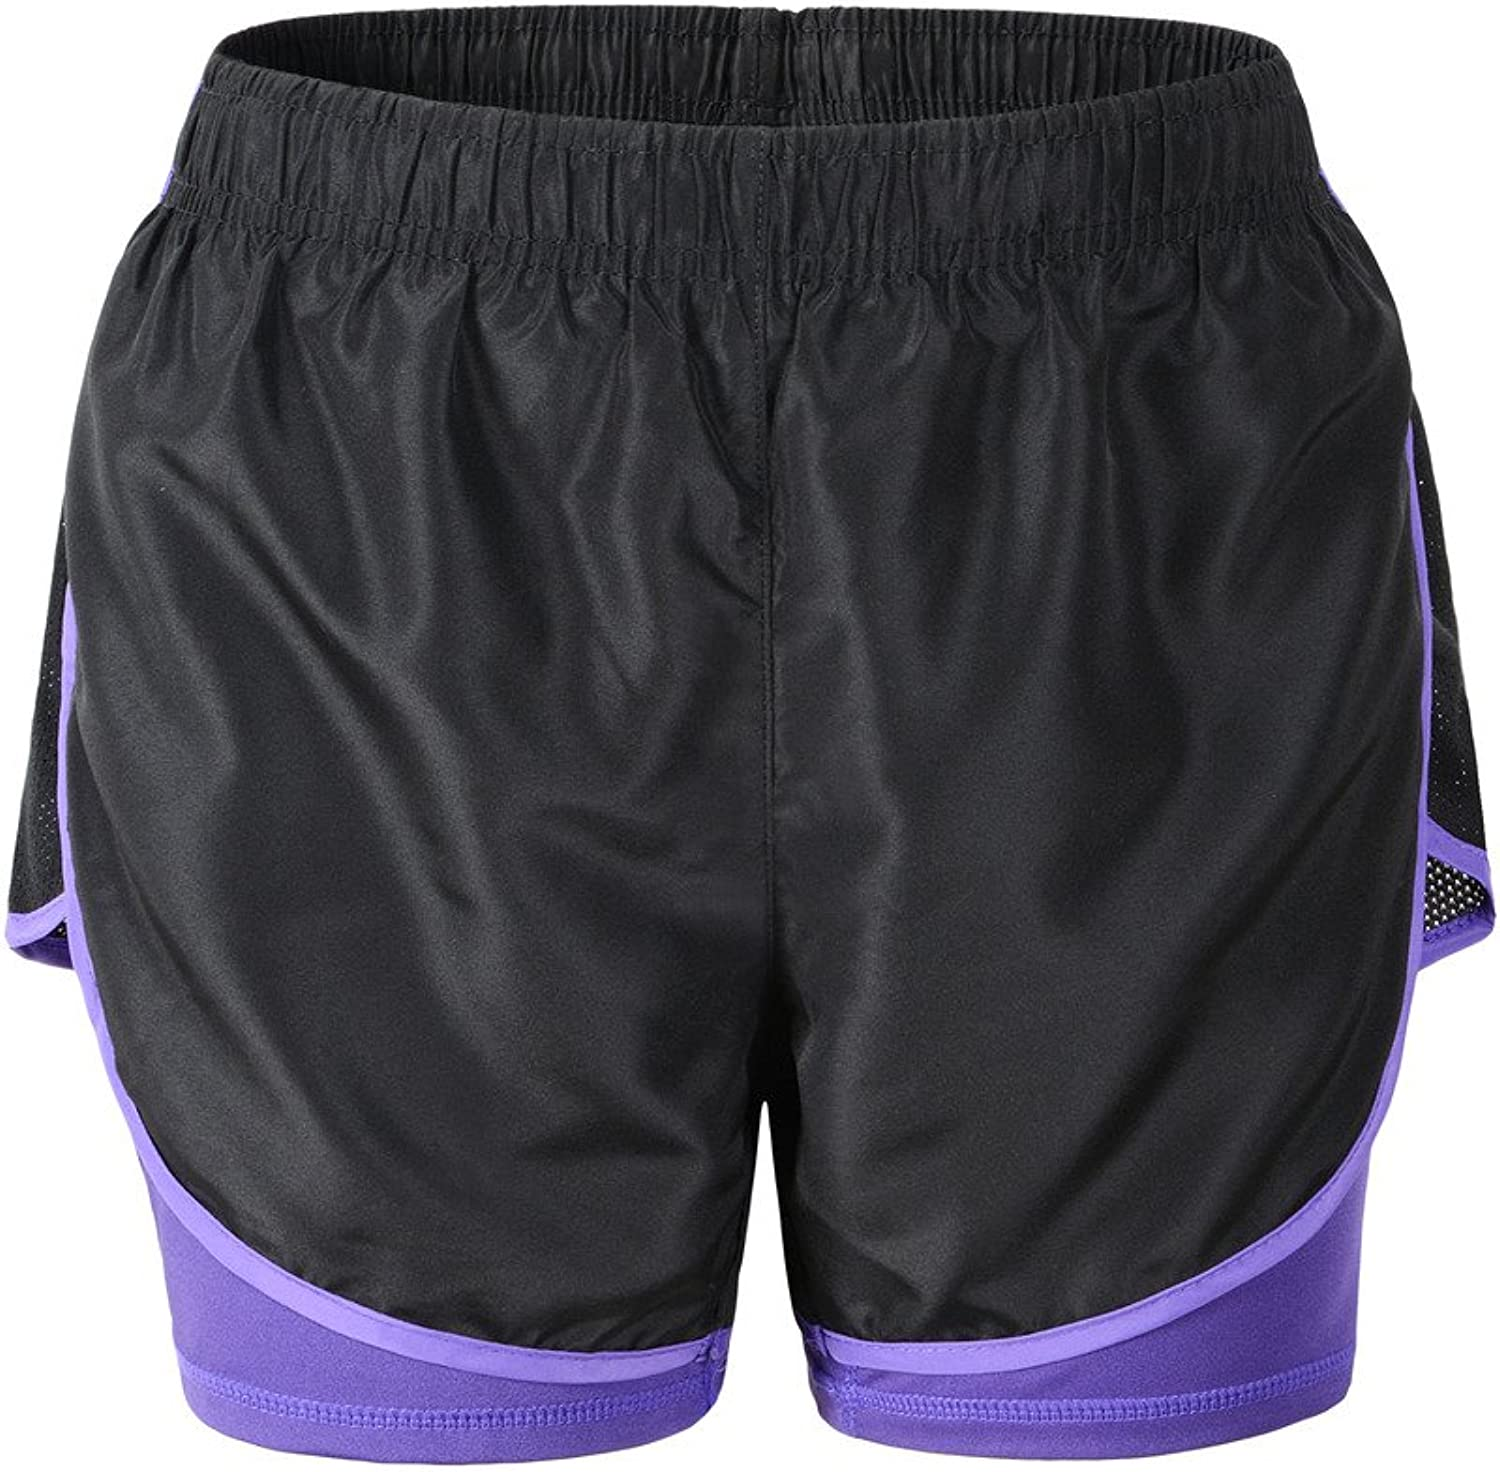 Deargles Womens Running Yoga Sport Shorts Training Shorts with Lining,2 in 1 Running Shorts